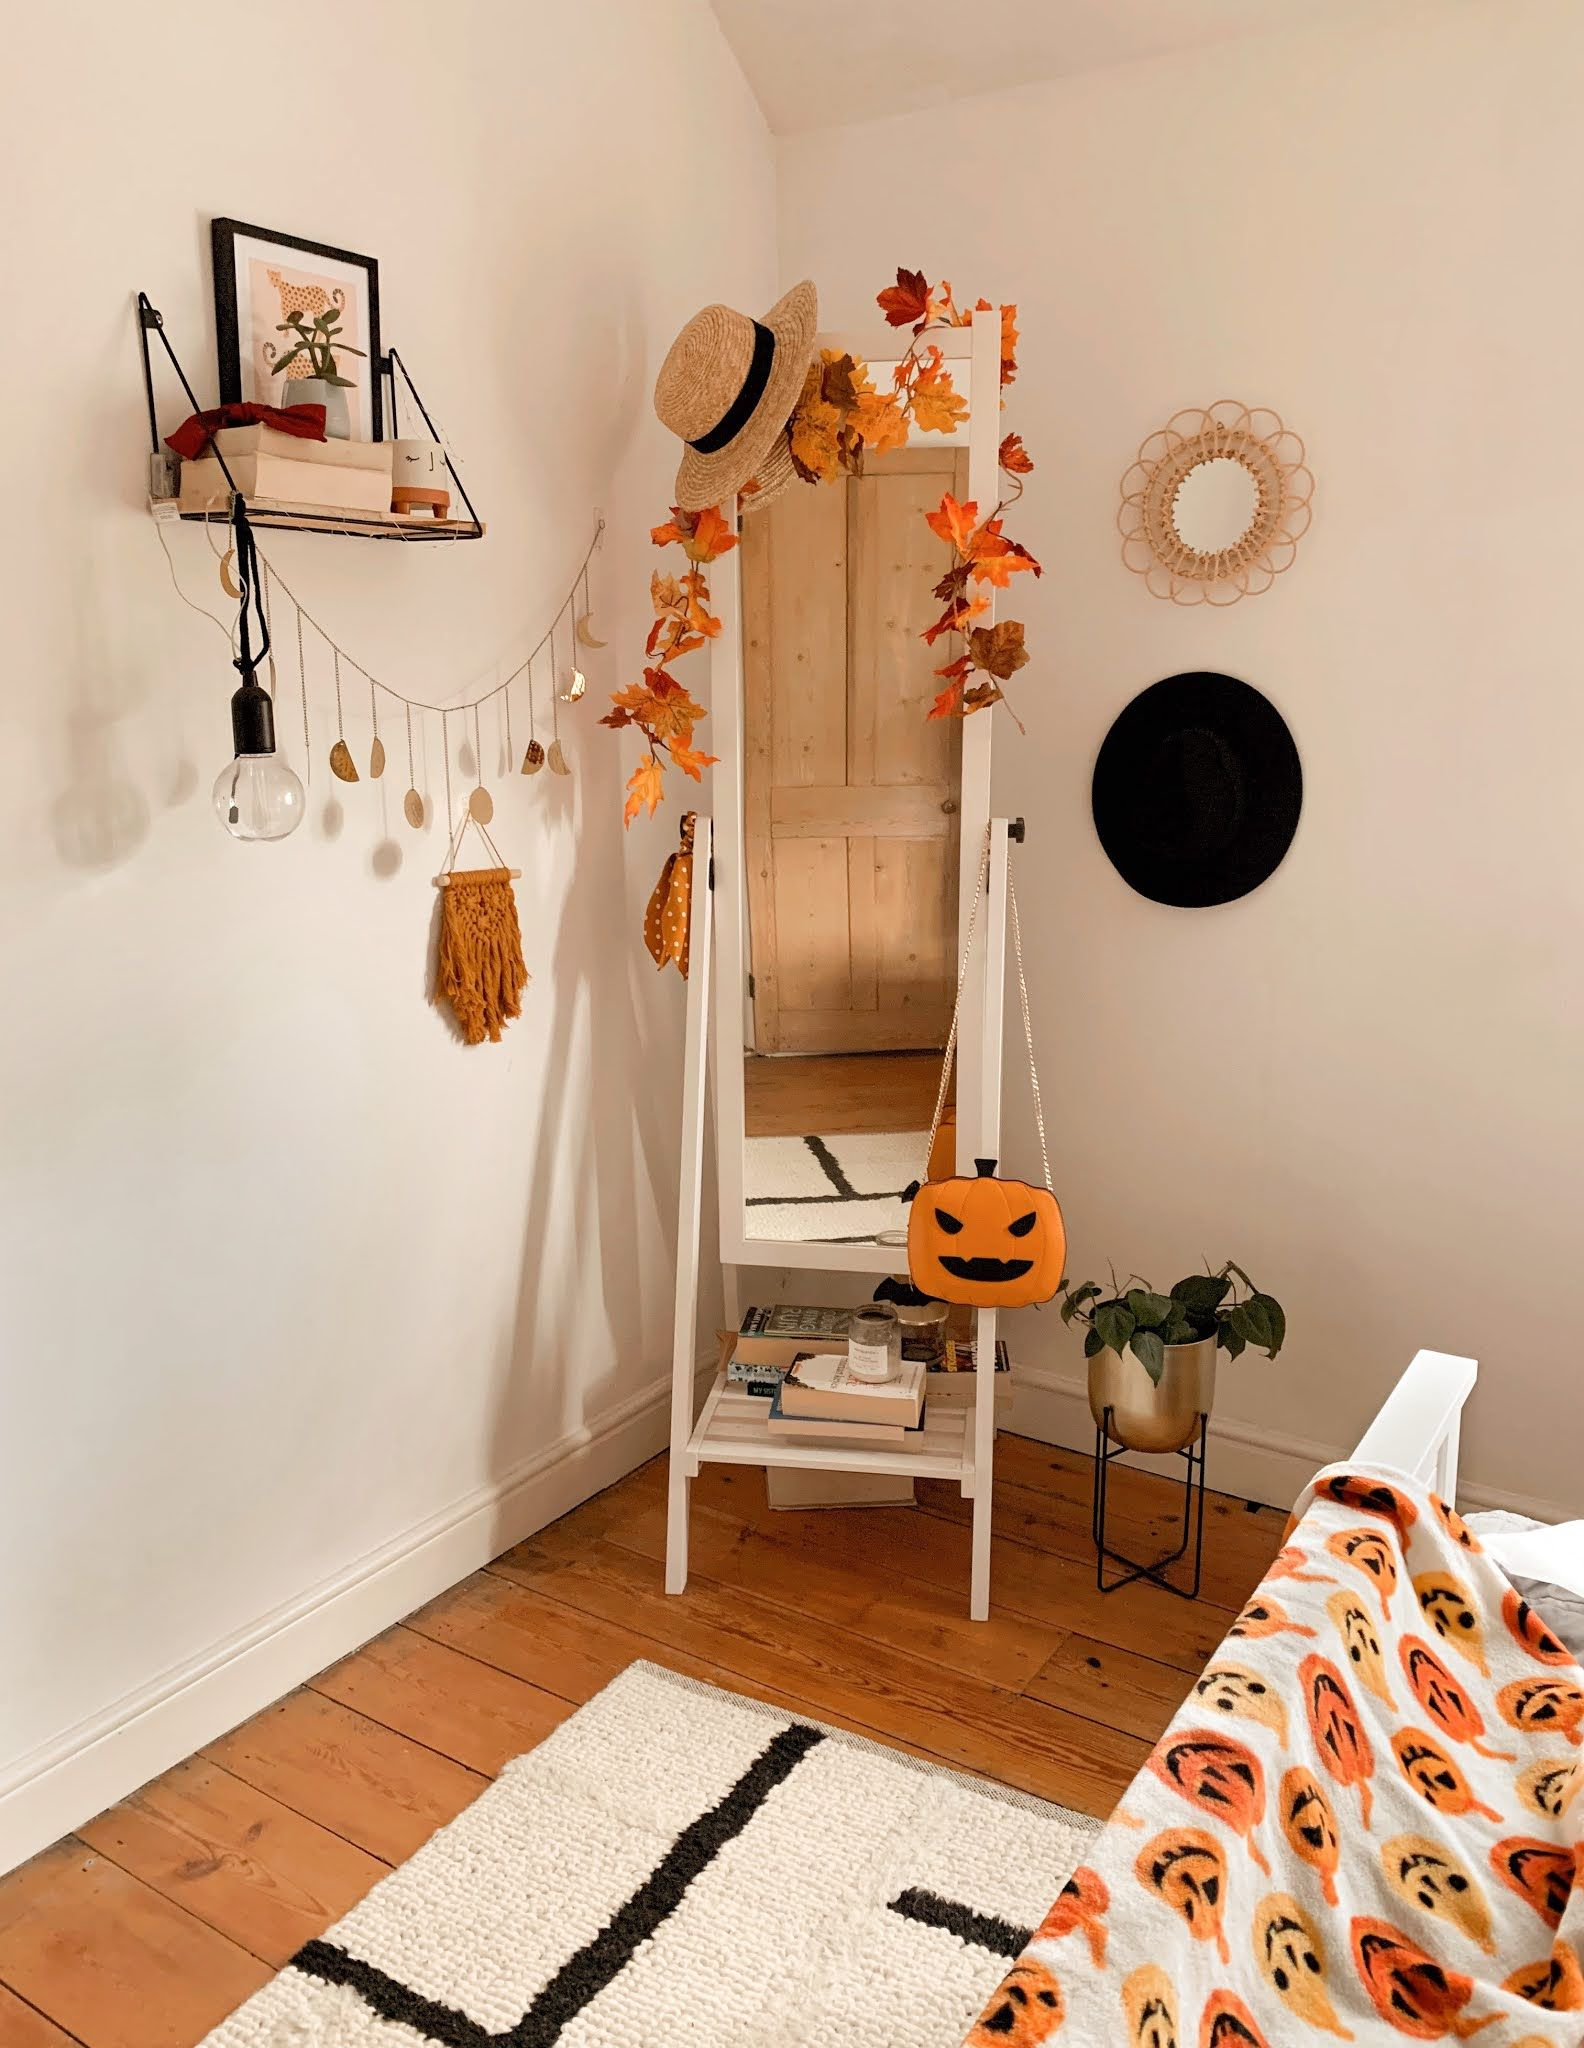 Amazon Autumn Decor Favourites Fall Room Decor Fall Home Decor Halloween Room Decor